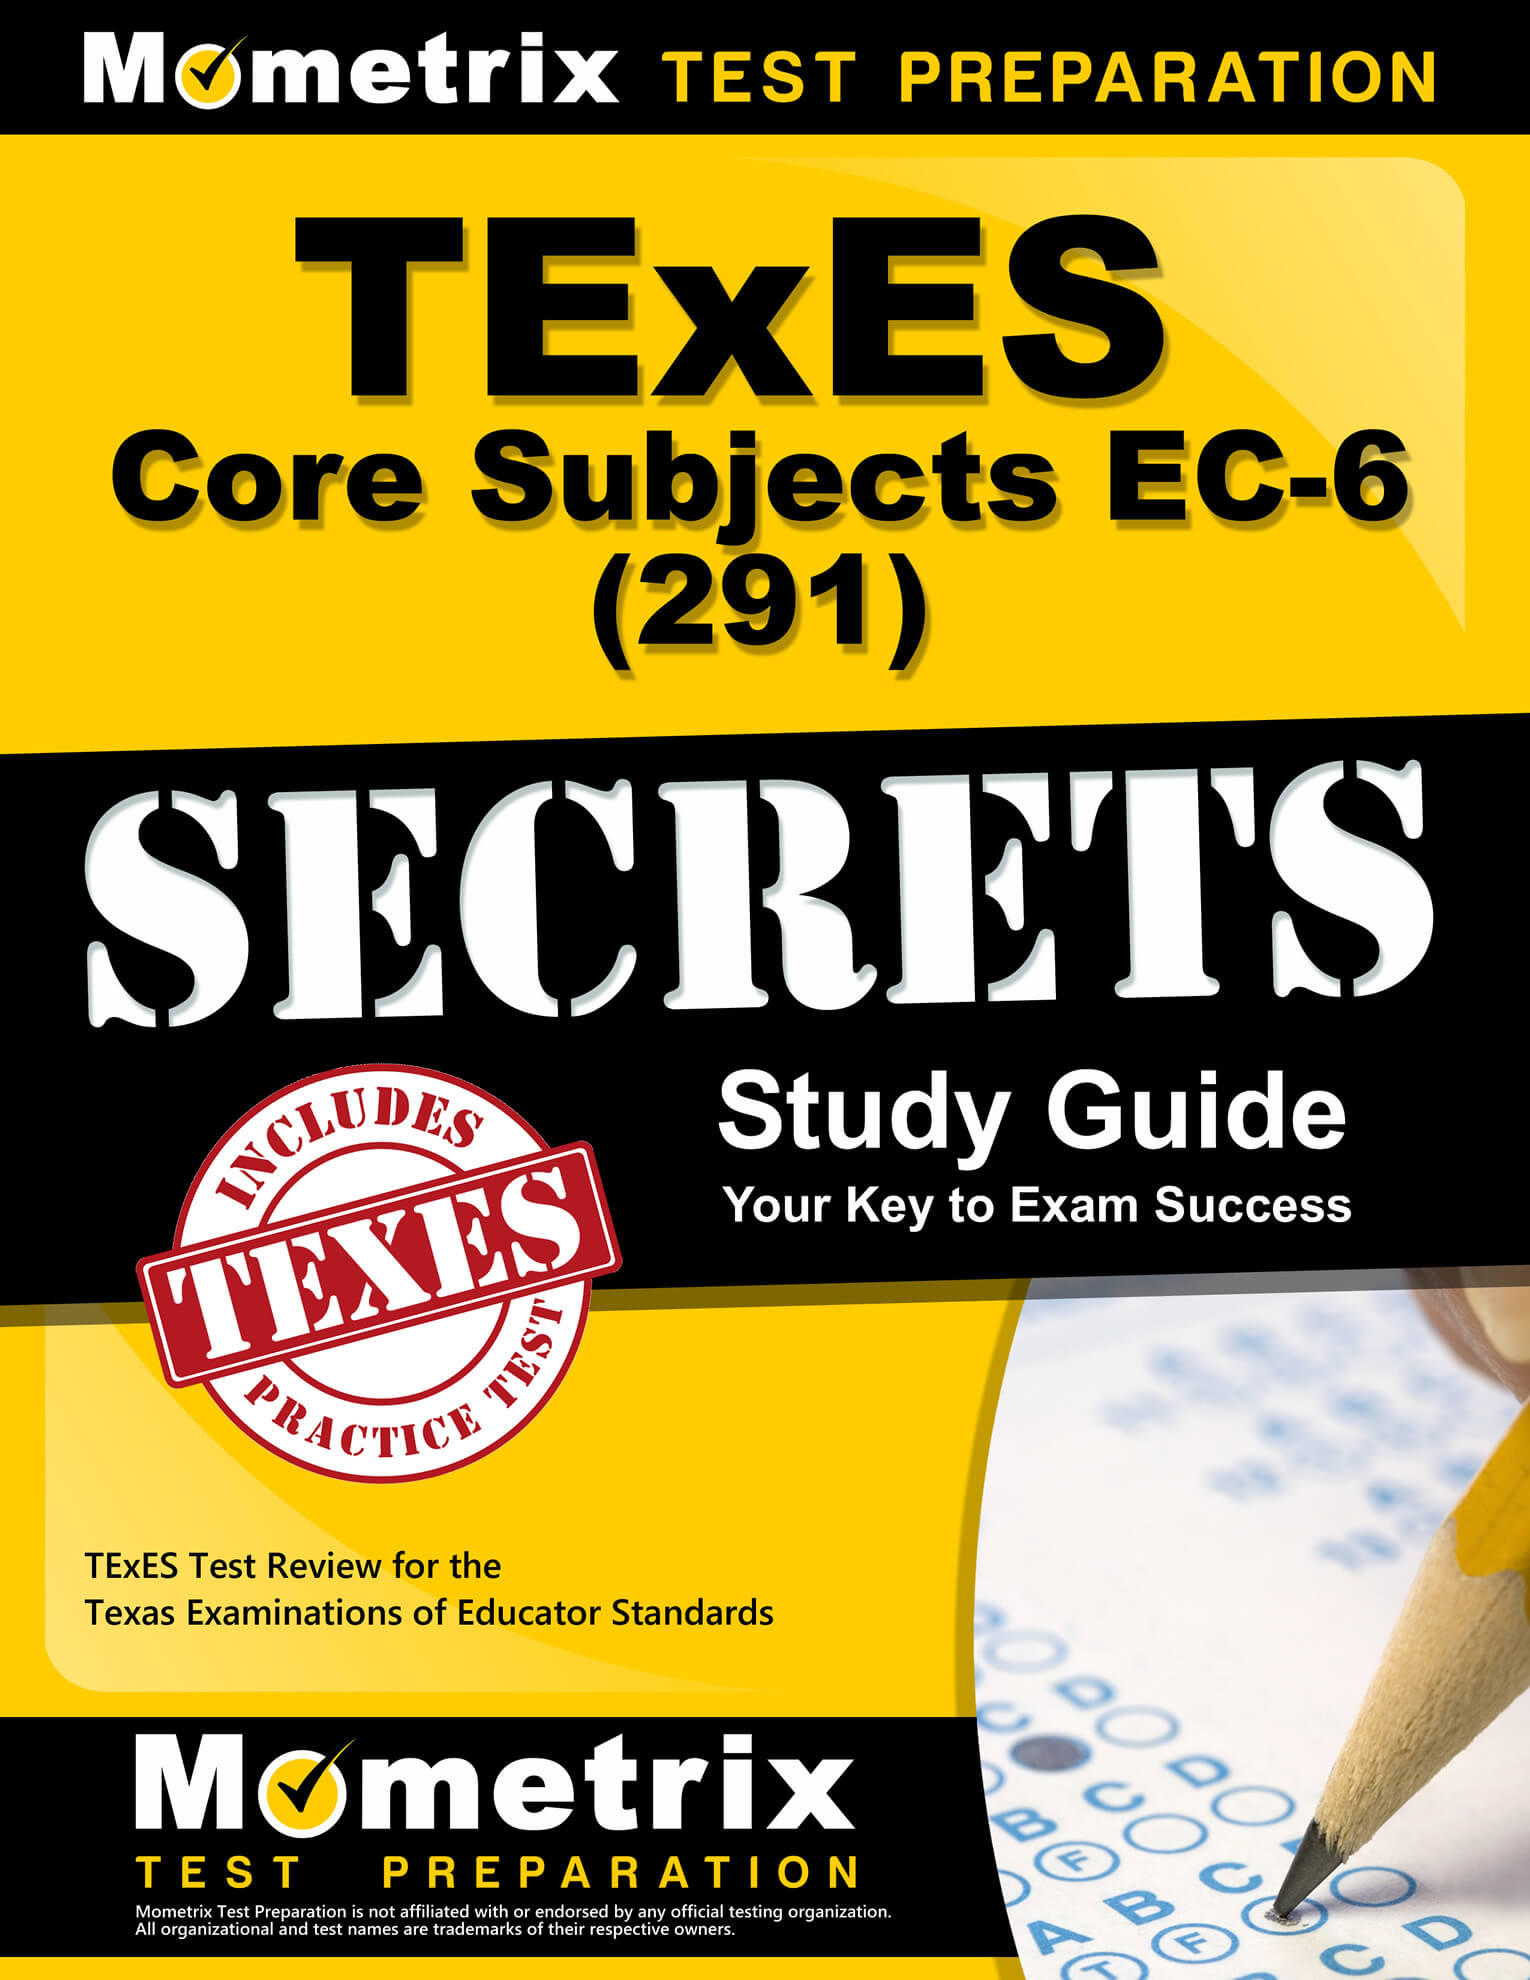 Passing the texes certification exam - Texes Flashcard Study System